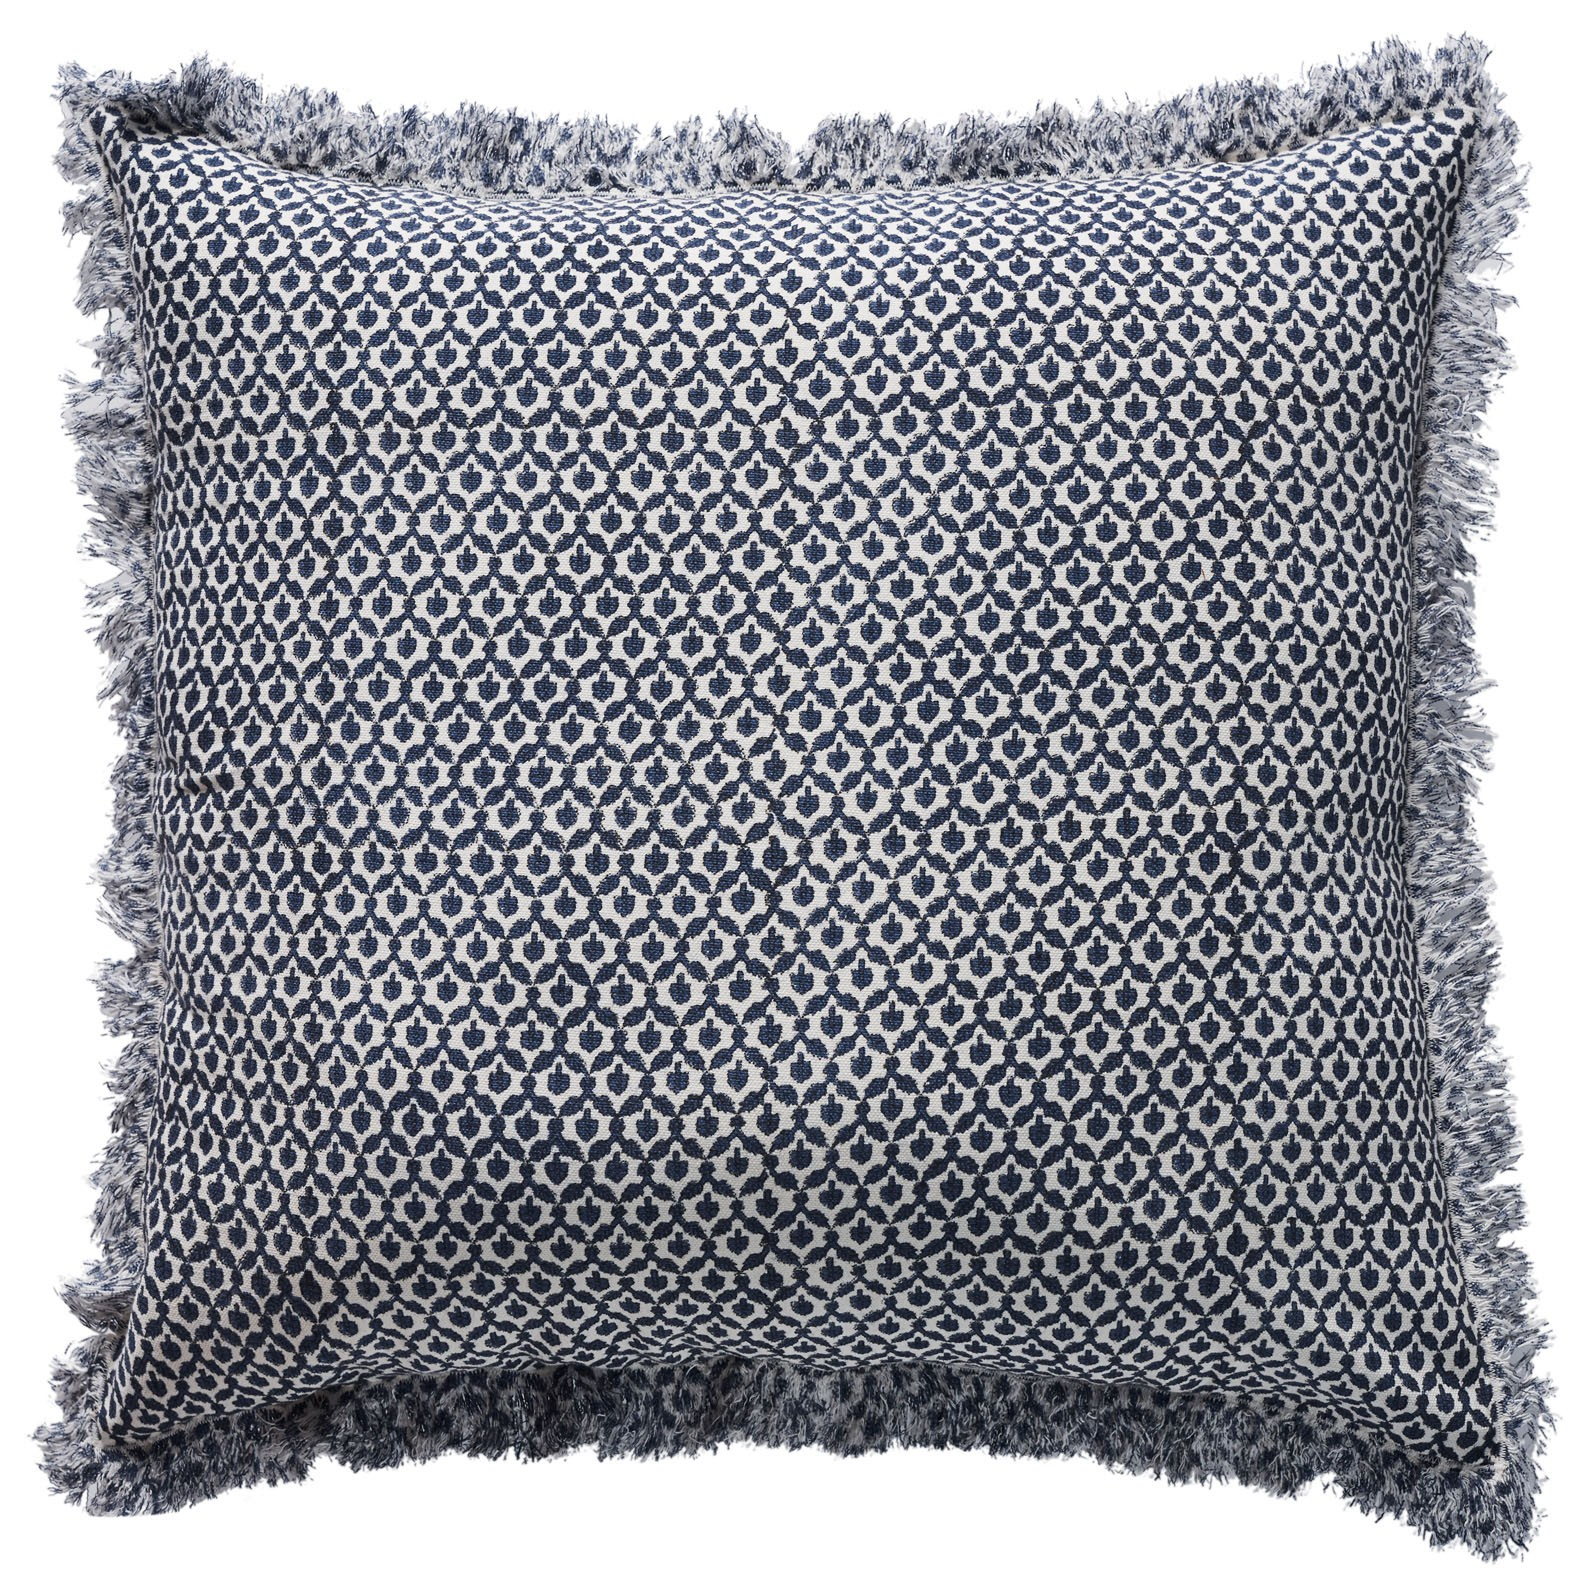 milieu field cushion - hand printed in classic navy